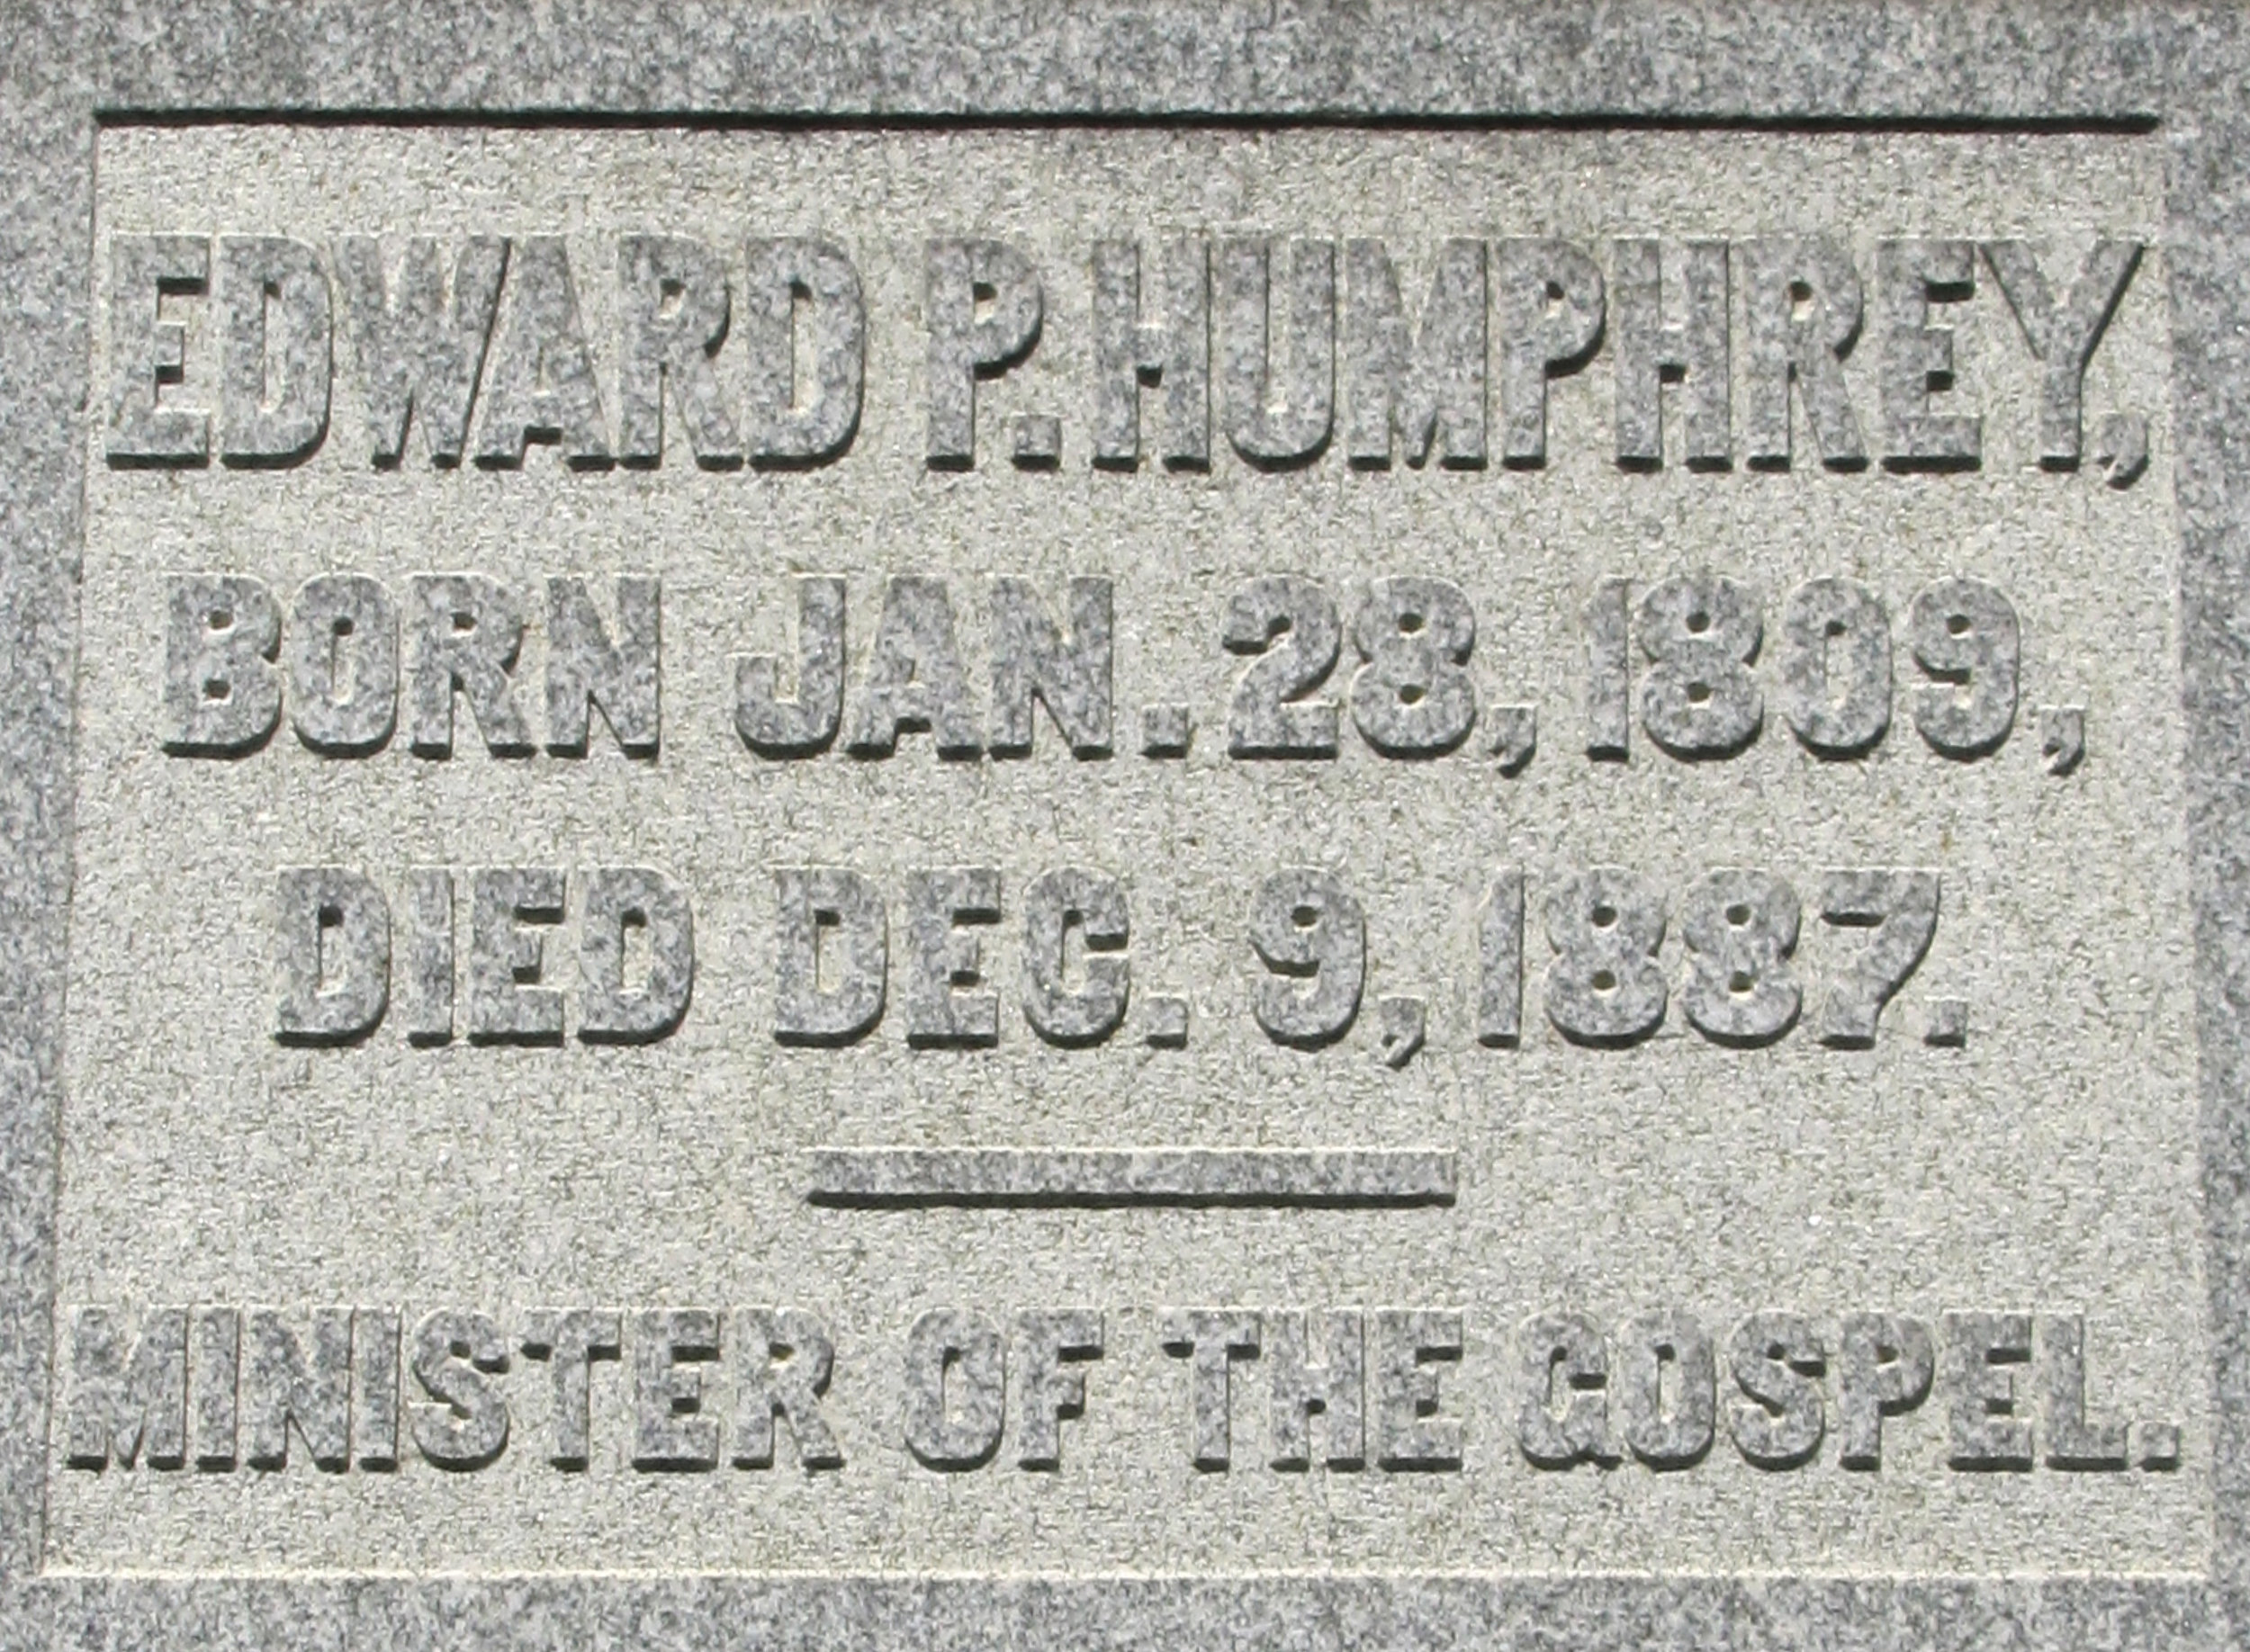 Edward Porter Humphrey is buried at Cave Hill Cemetery, Louisville, Kentucky.